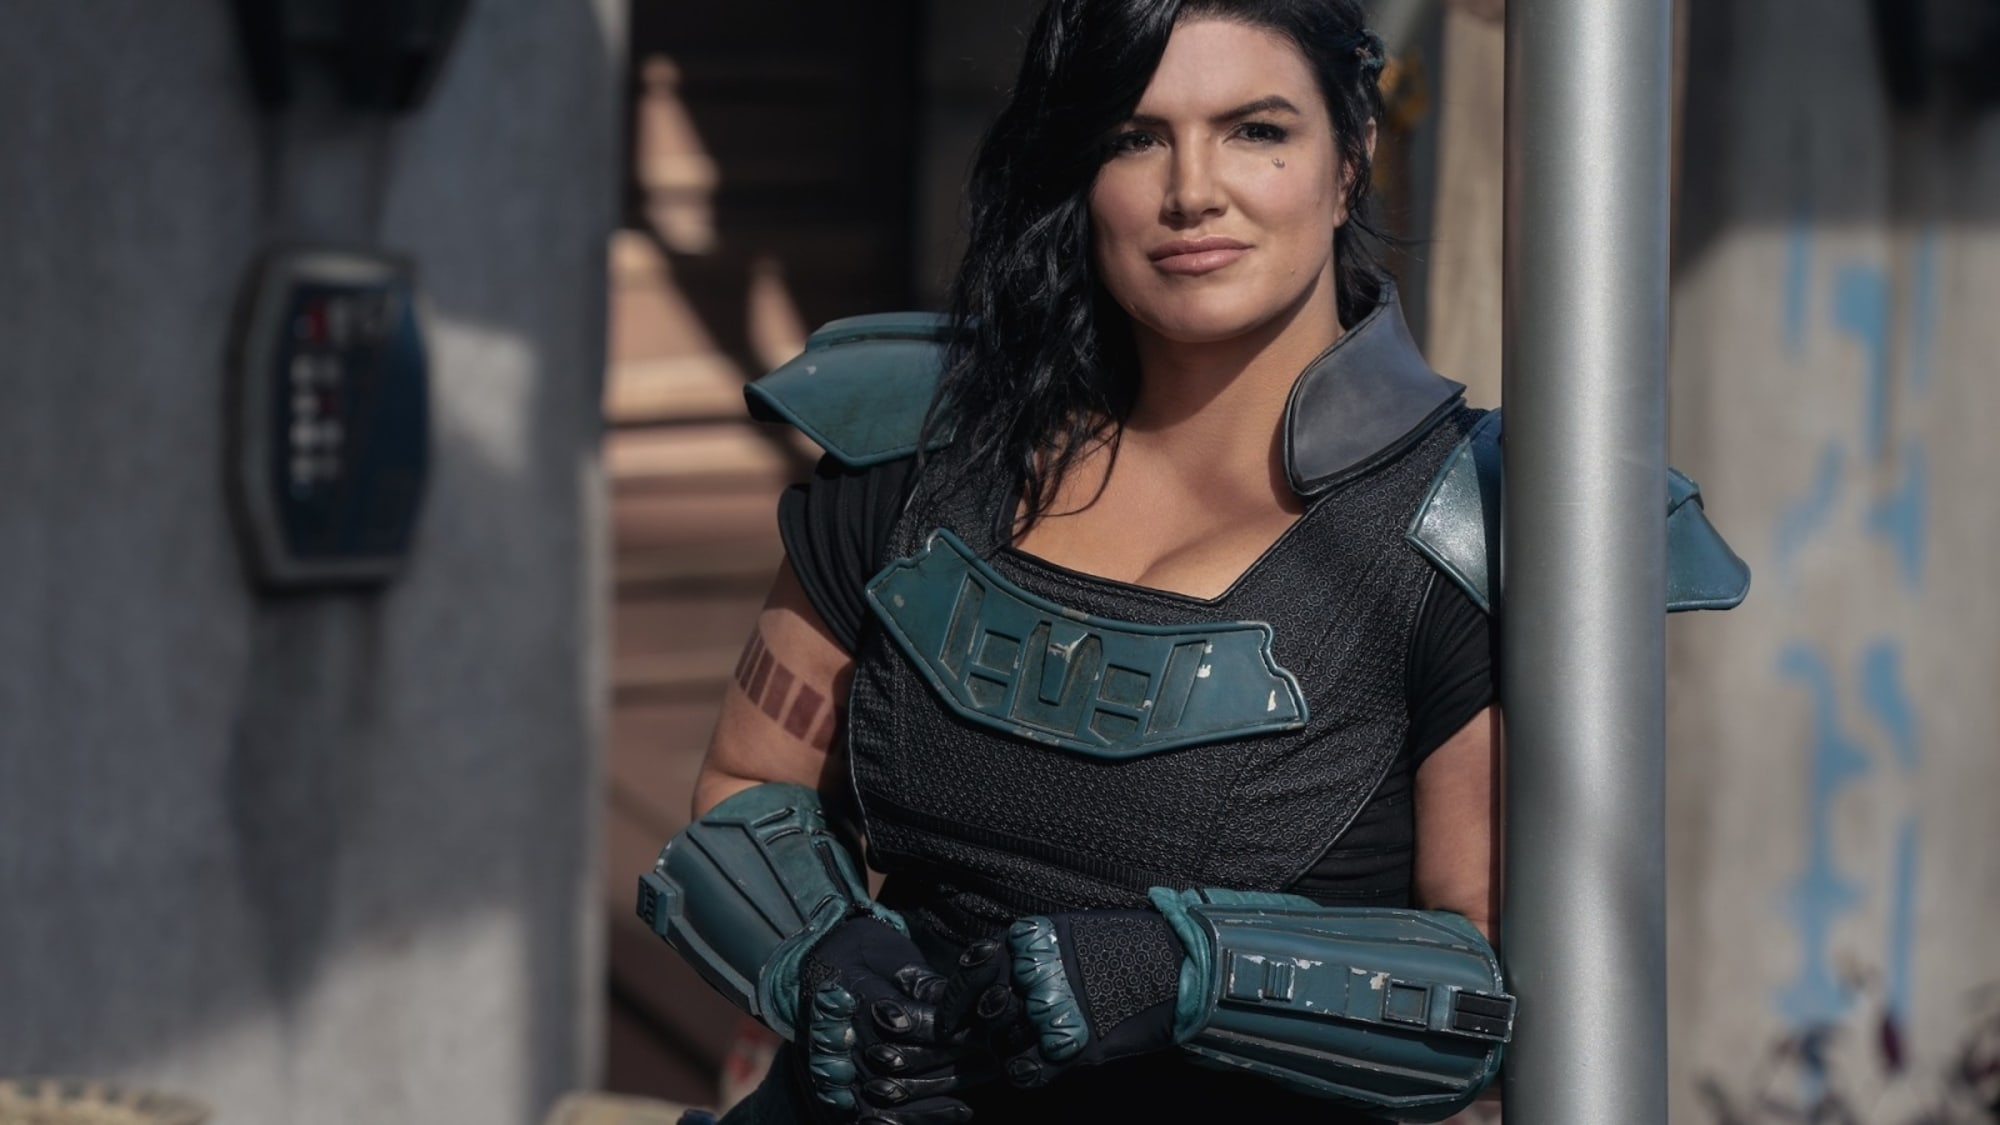 Disney pushes Gina Carano for Emmy consideration for The Mandalorian